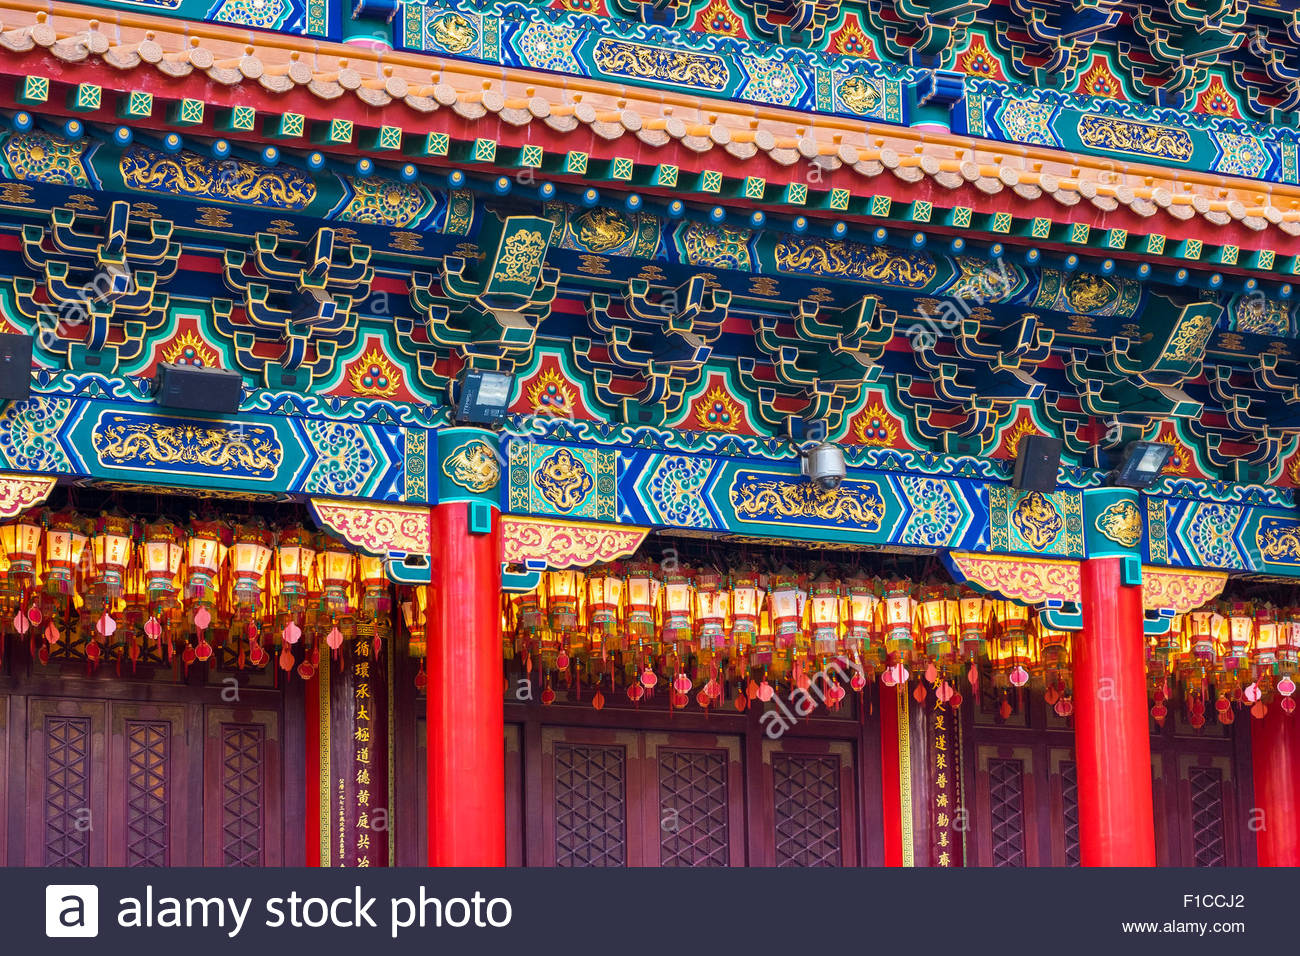 Détail de l'autel principal à la maison (de Wong Tai Sin temple de Sik Sik Yuen), district de Wong Photo Stock